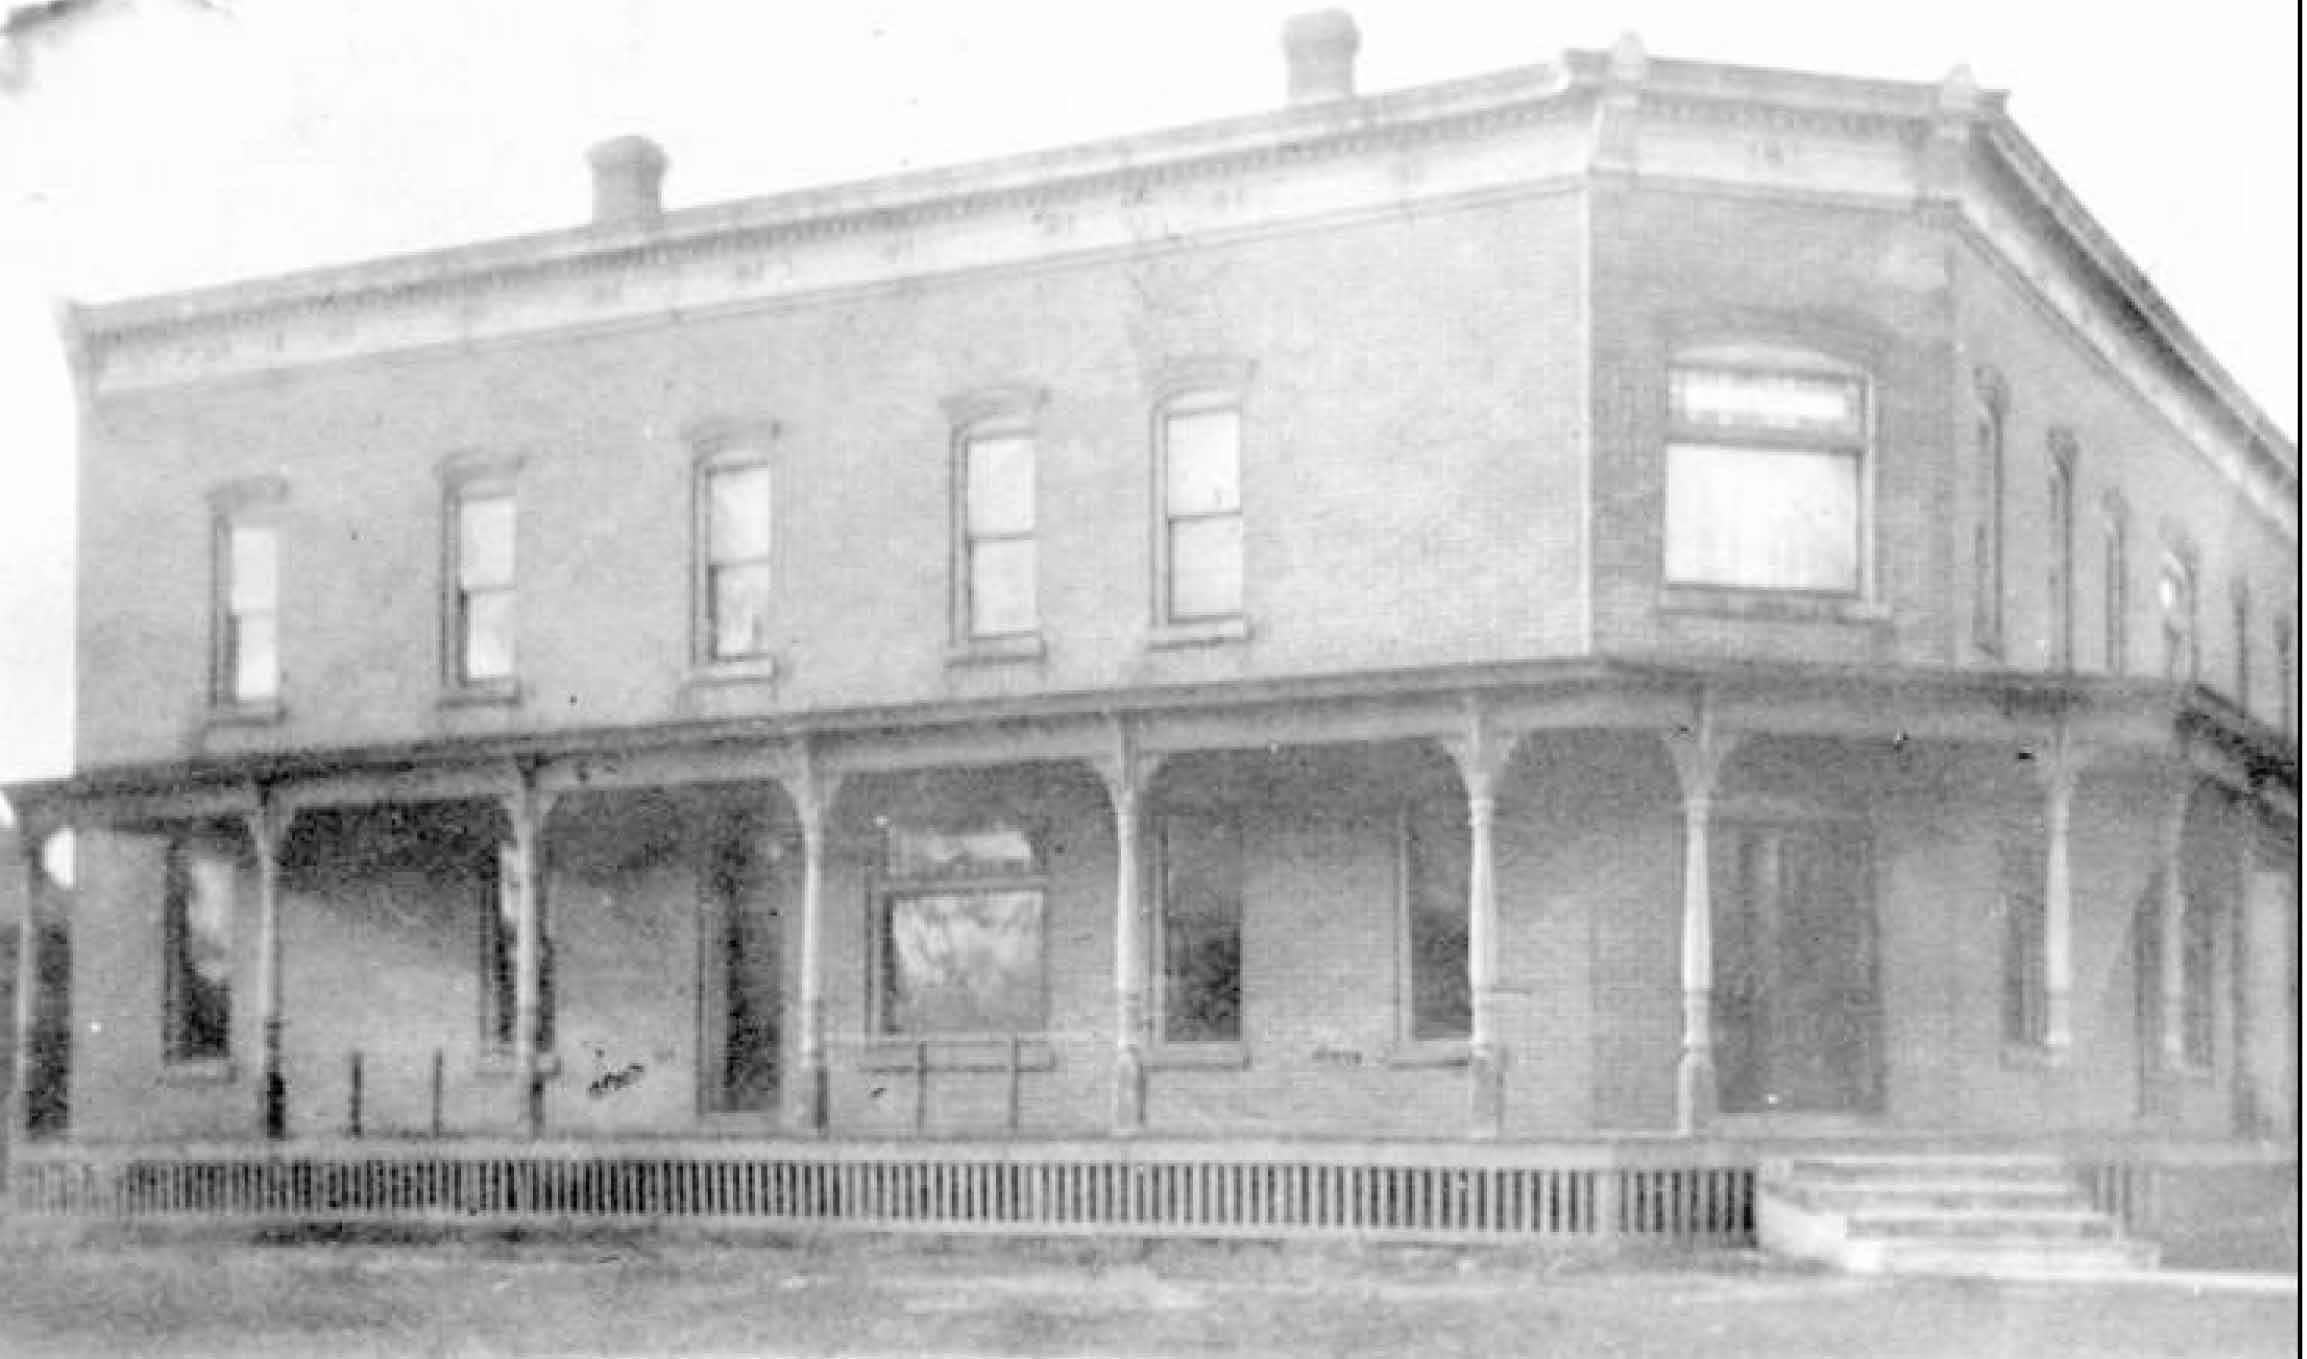 South Lyon's Railroads and the Witch's Hat Depot